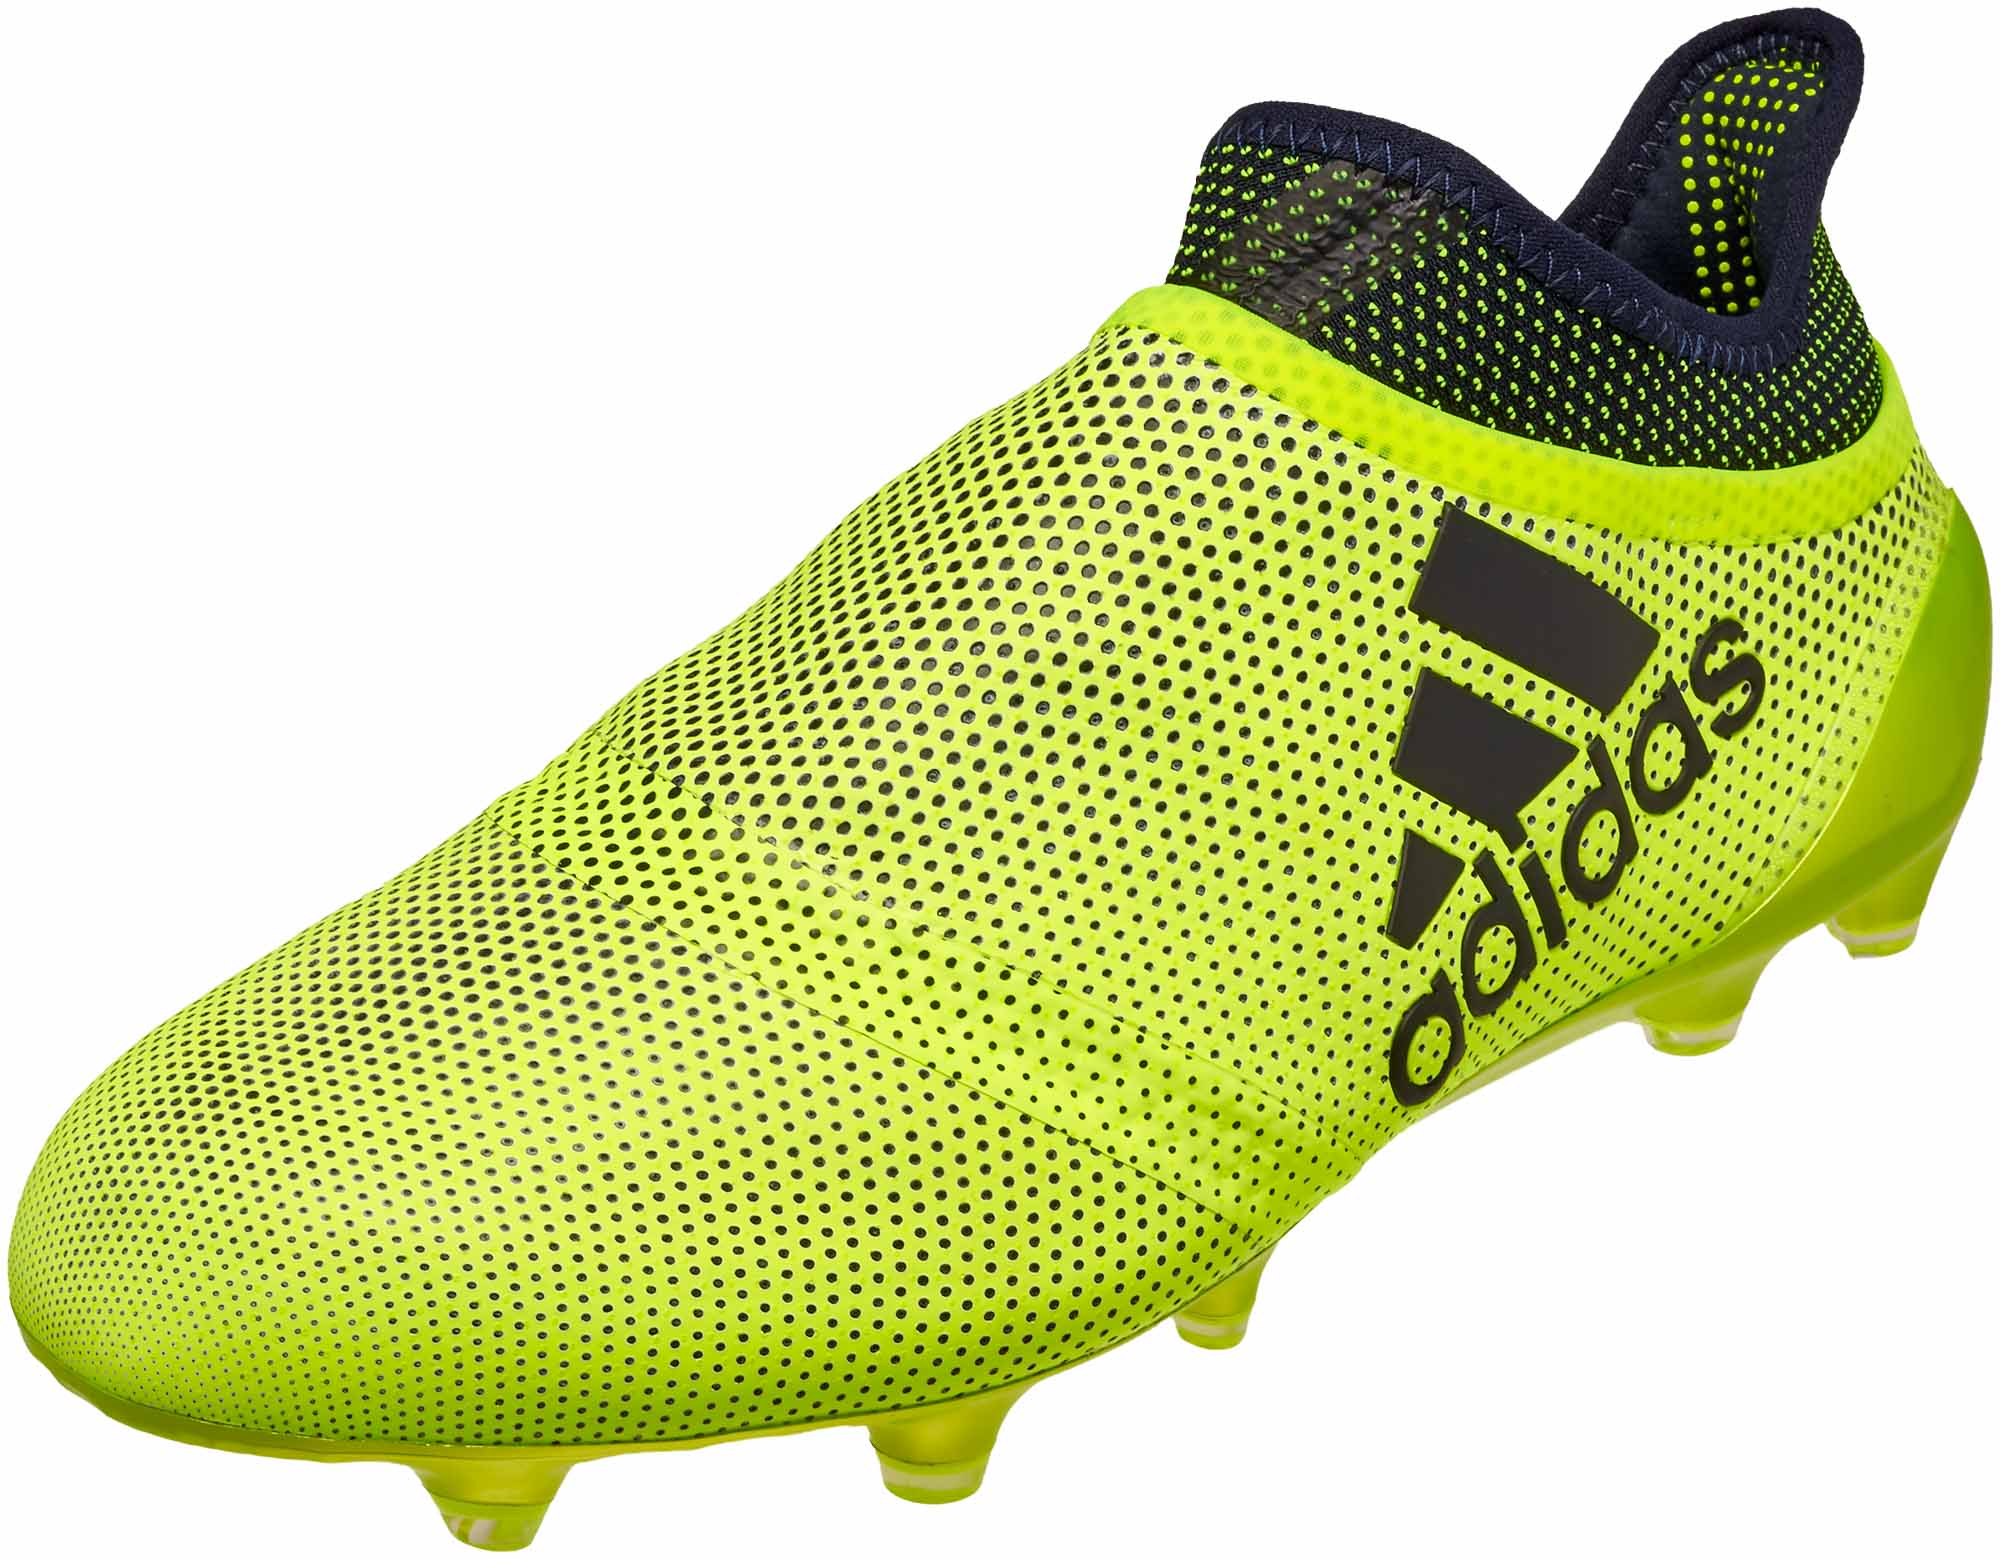 d61d54368f2d adidas X 17+ Purechaos FG Soccer Cleats - Solar Yellow   Legend Ink